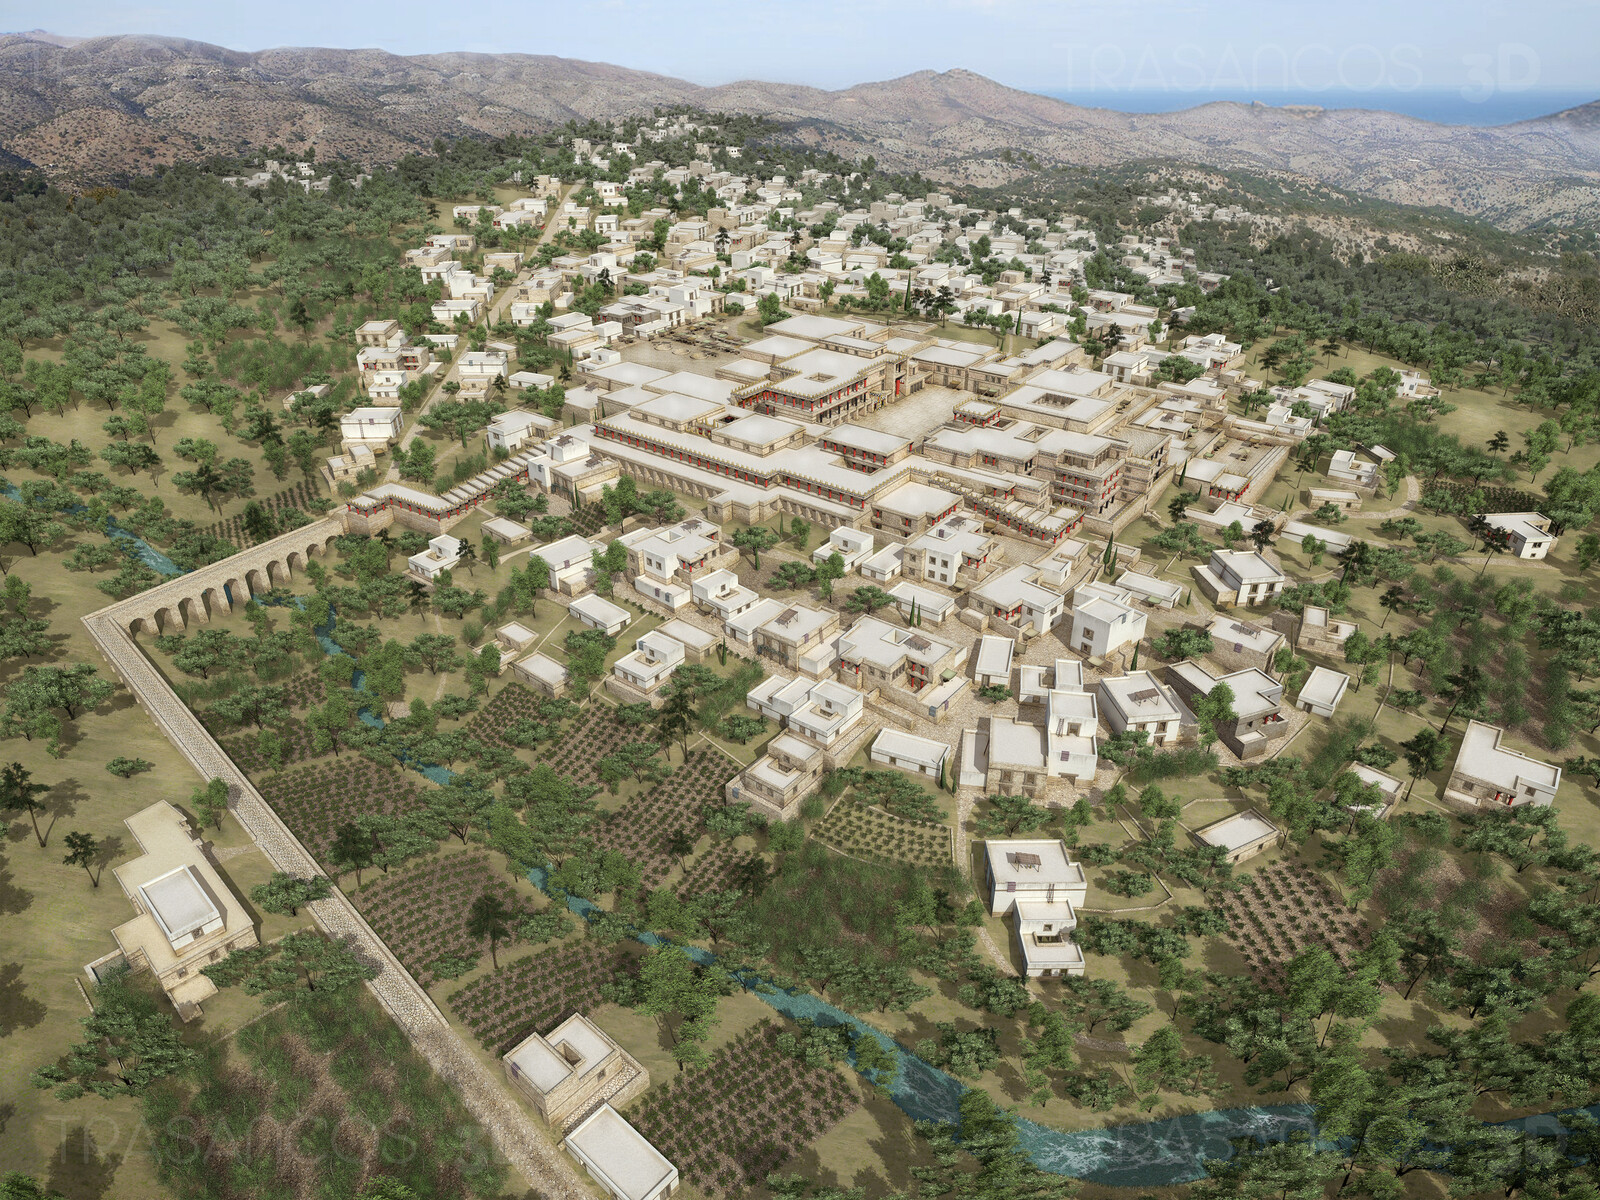 View of the City of Cnossos, with the palace in the middle. Modeled in collaboration with: - Andrés Armesto - Alejandro Soriano - Carlos Paz - Diego Blanco